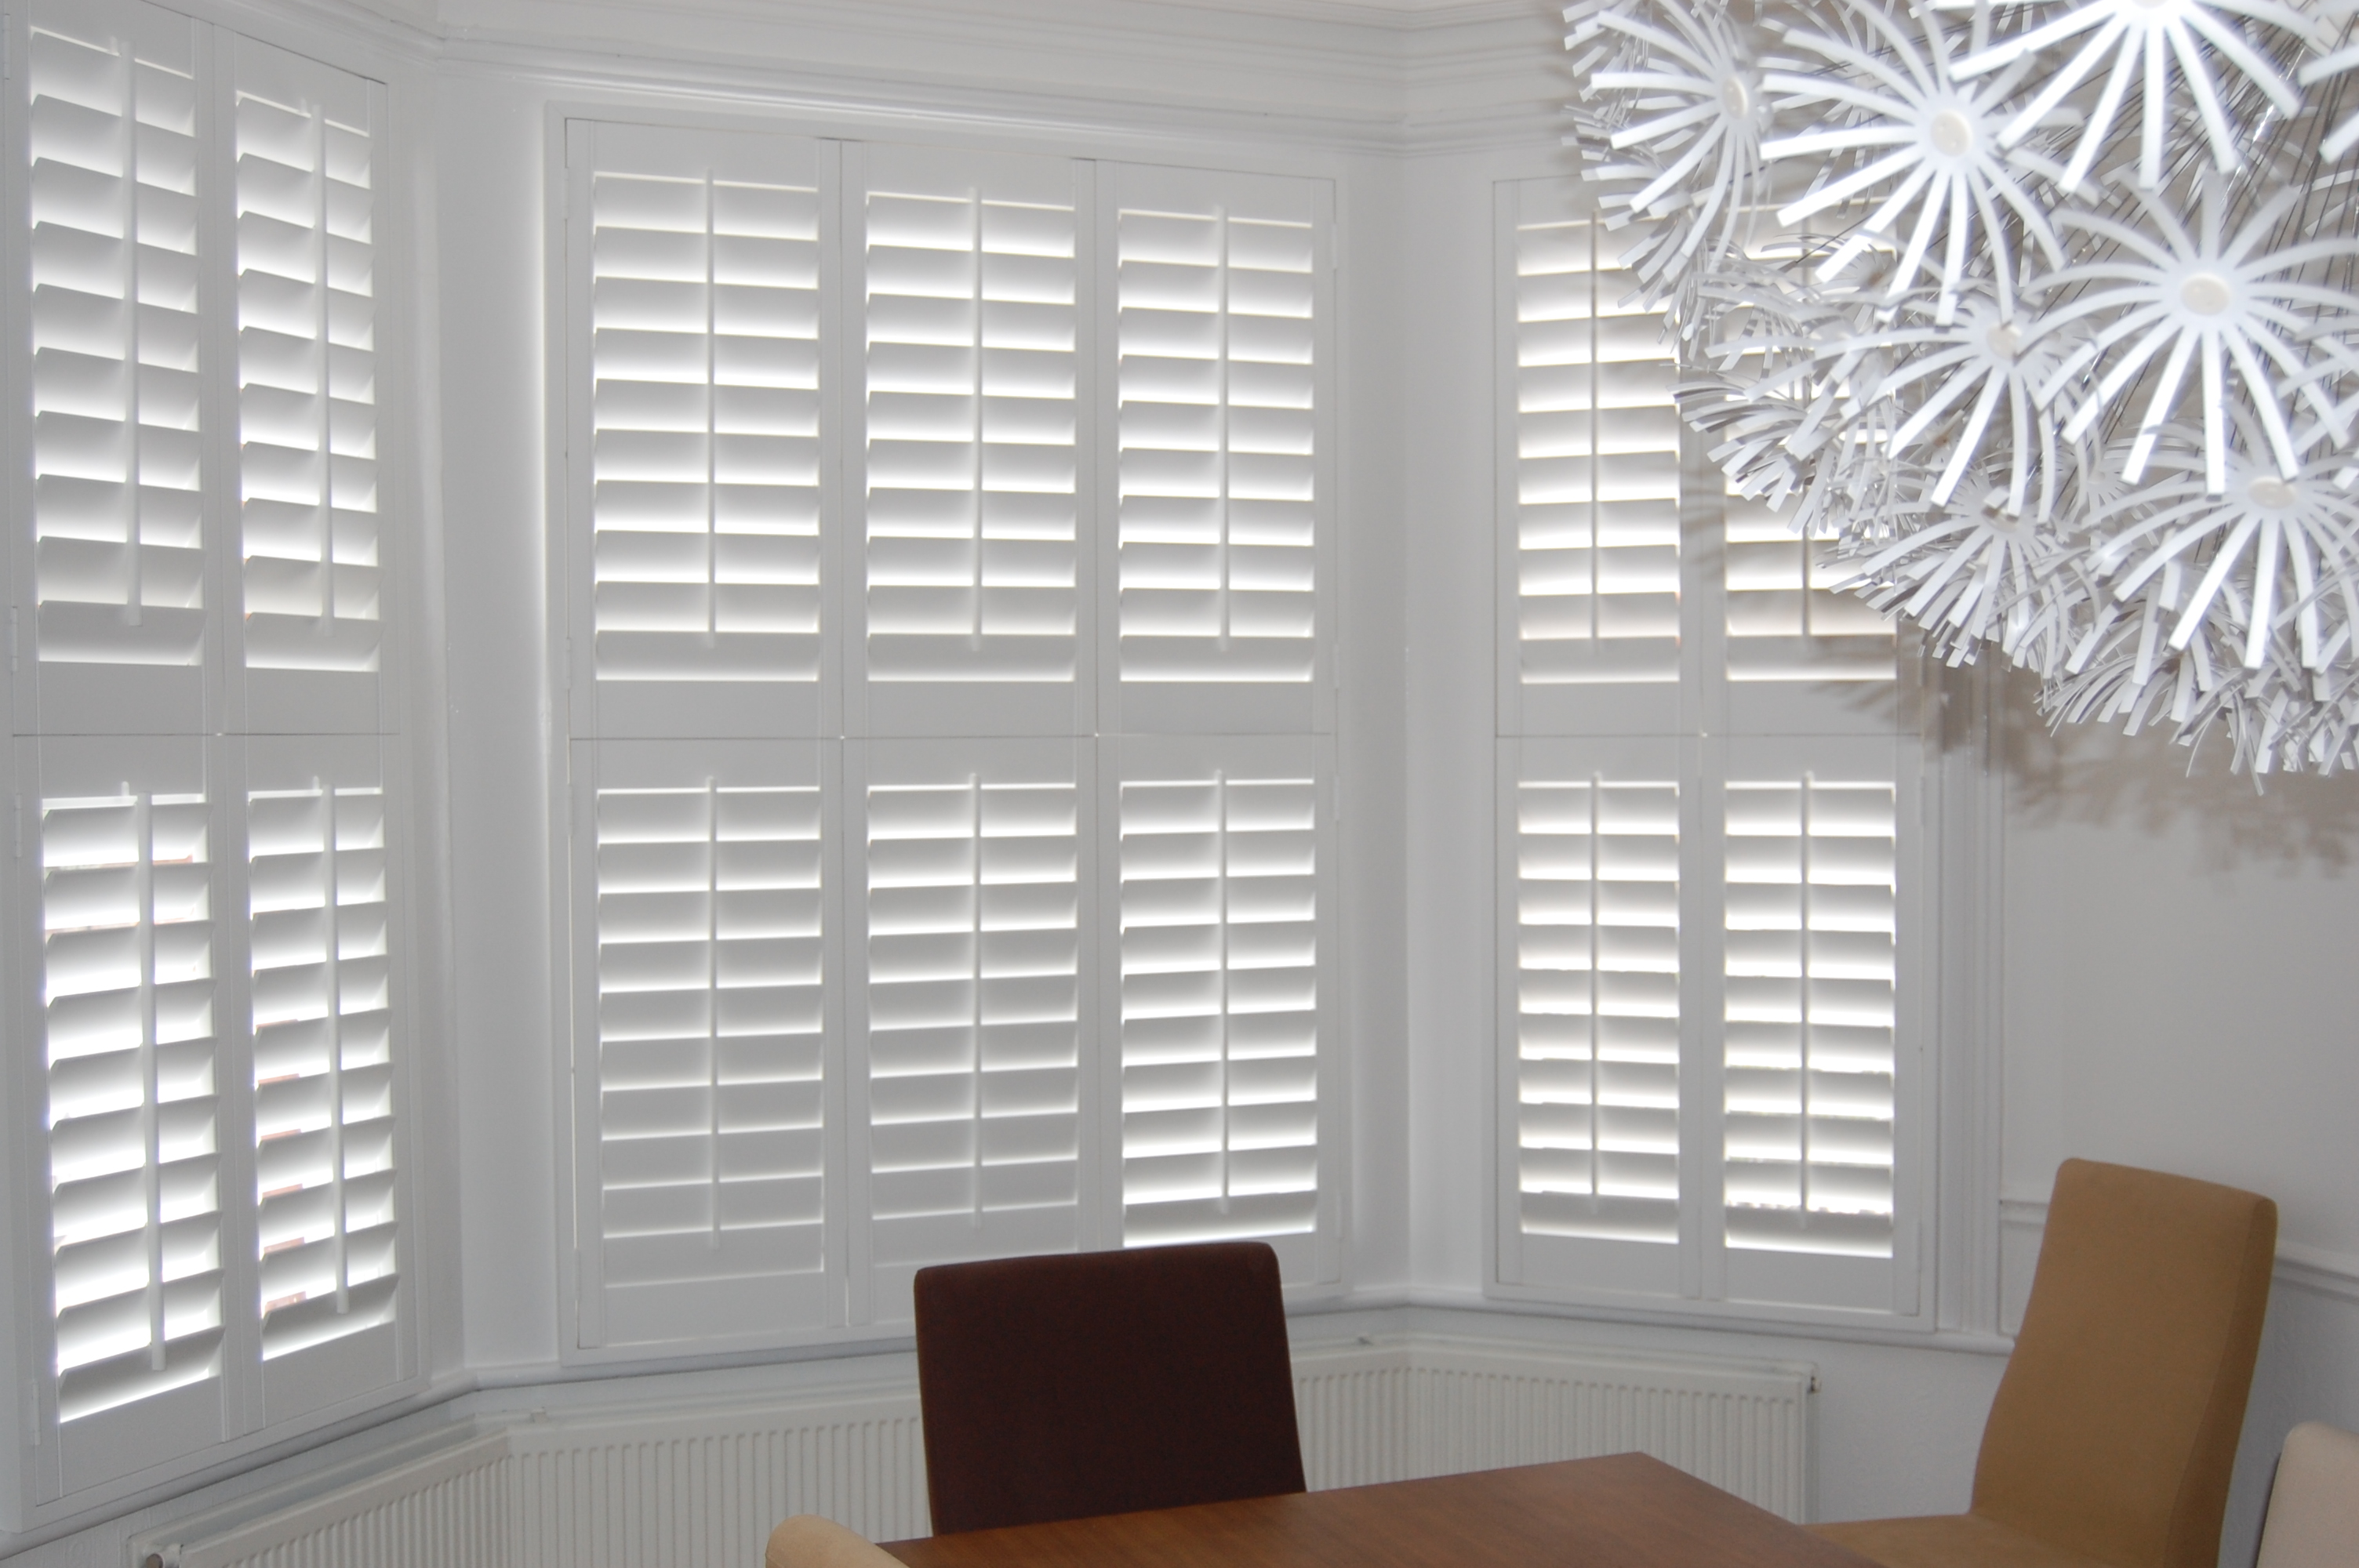 Plantation shutters internal blinds at penumbra kent for Should plantation shutters match trim